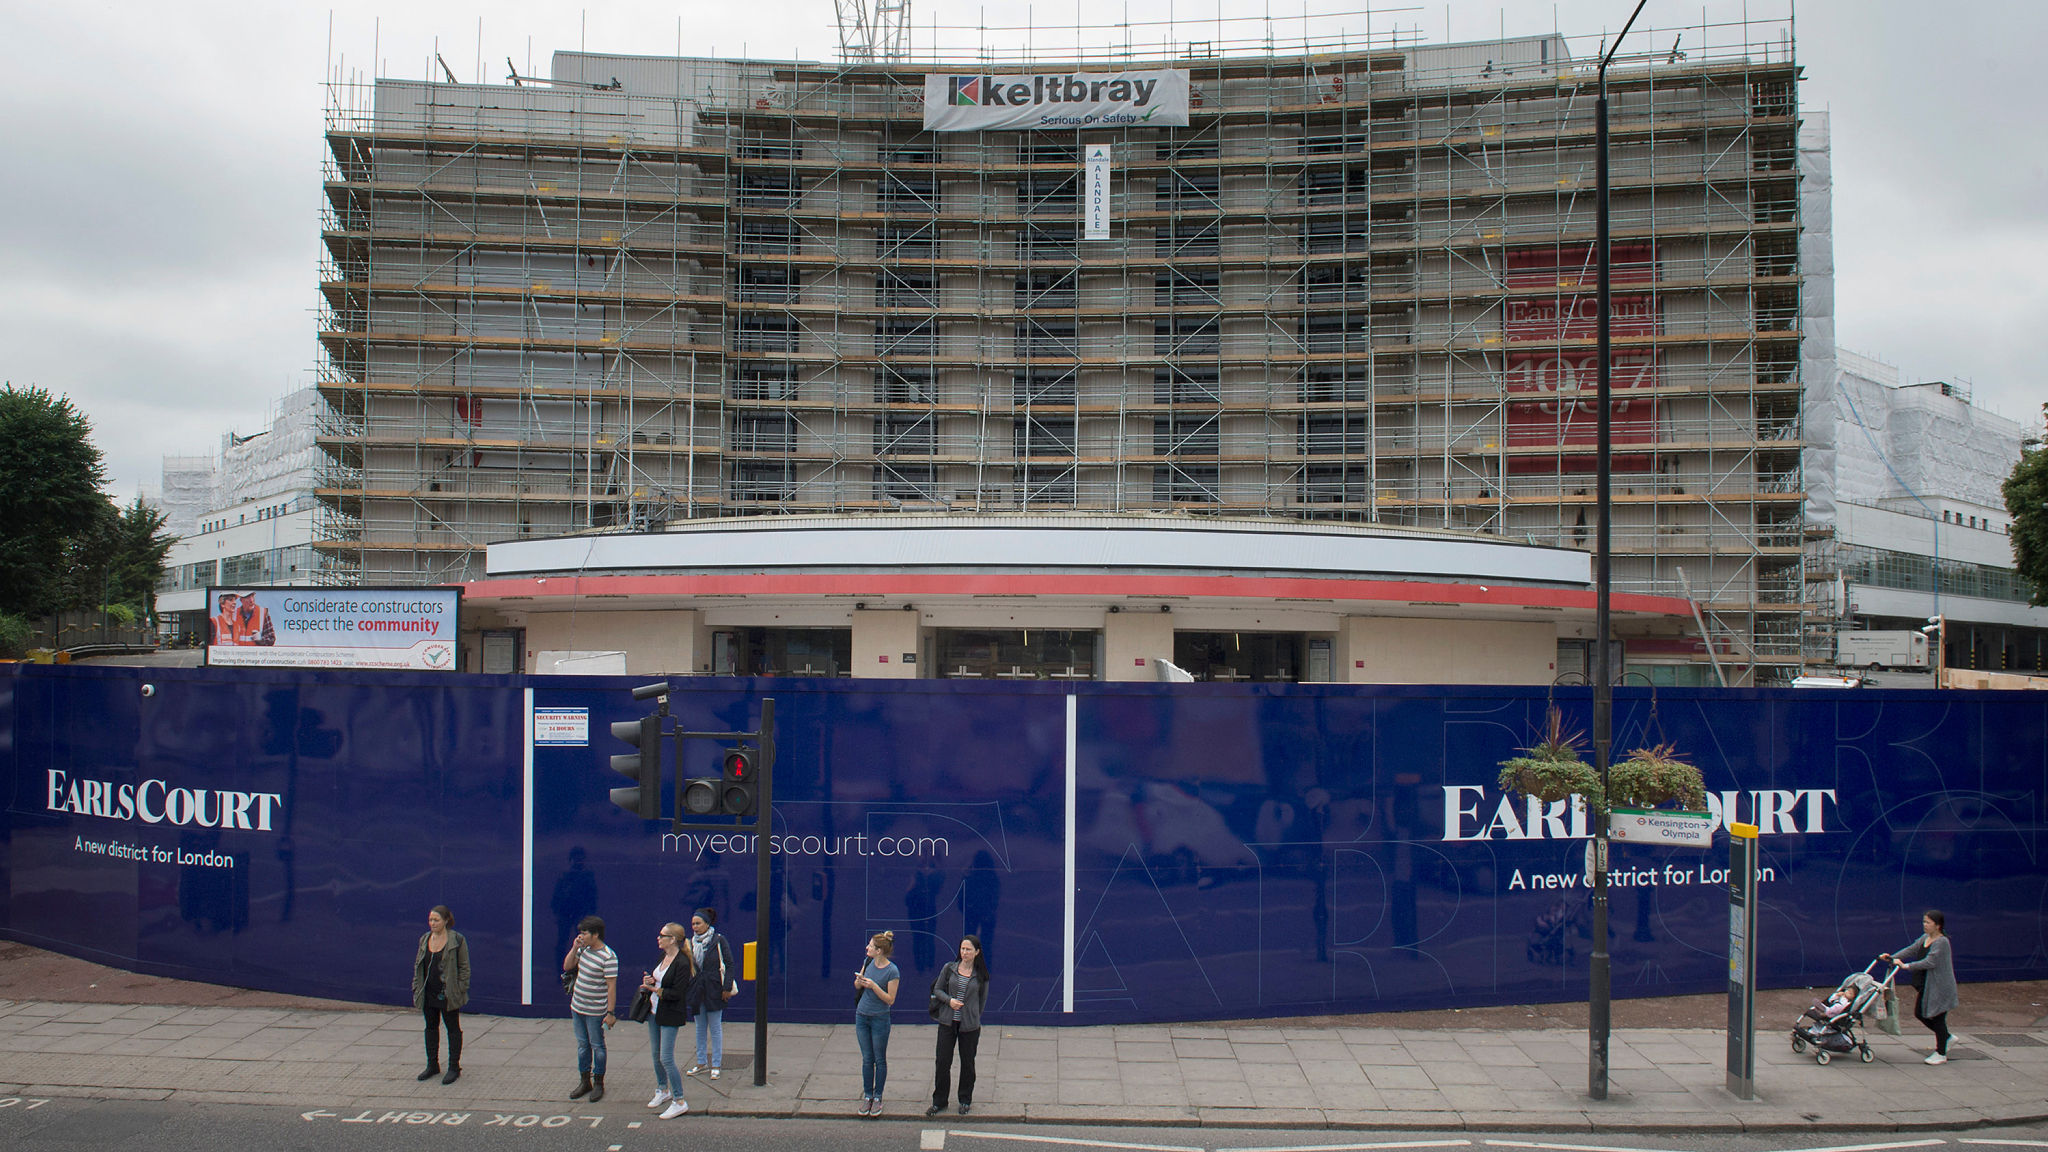 Capital & Counties to split in bid to contain Earl's Court